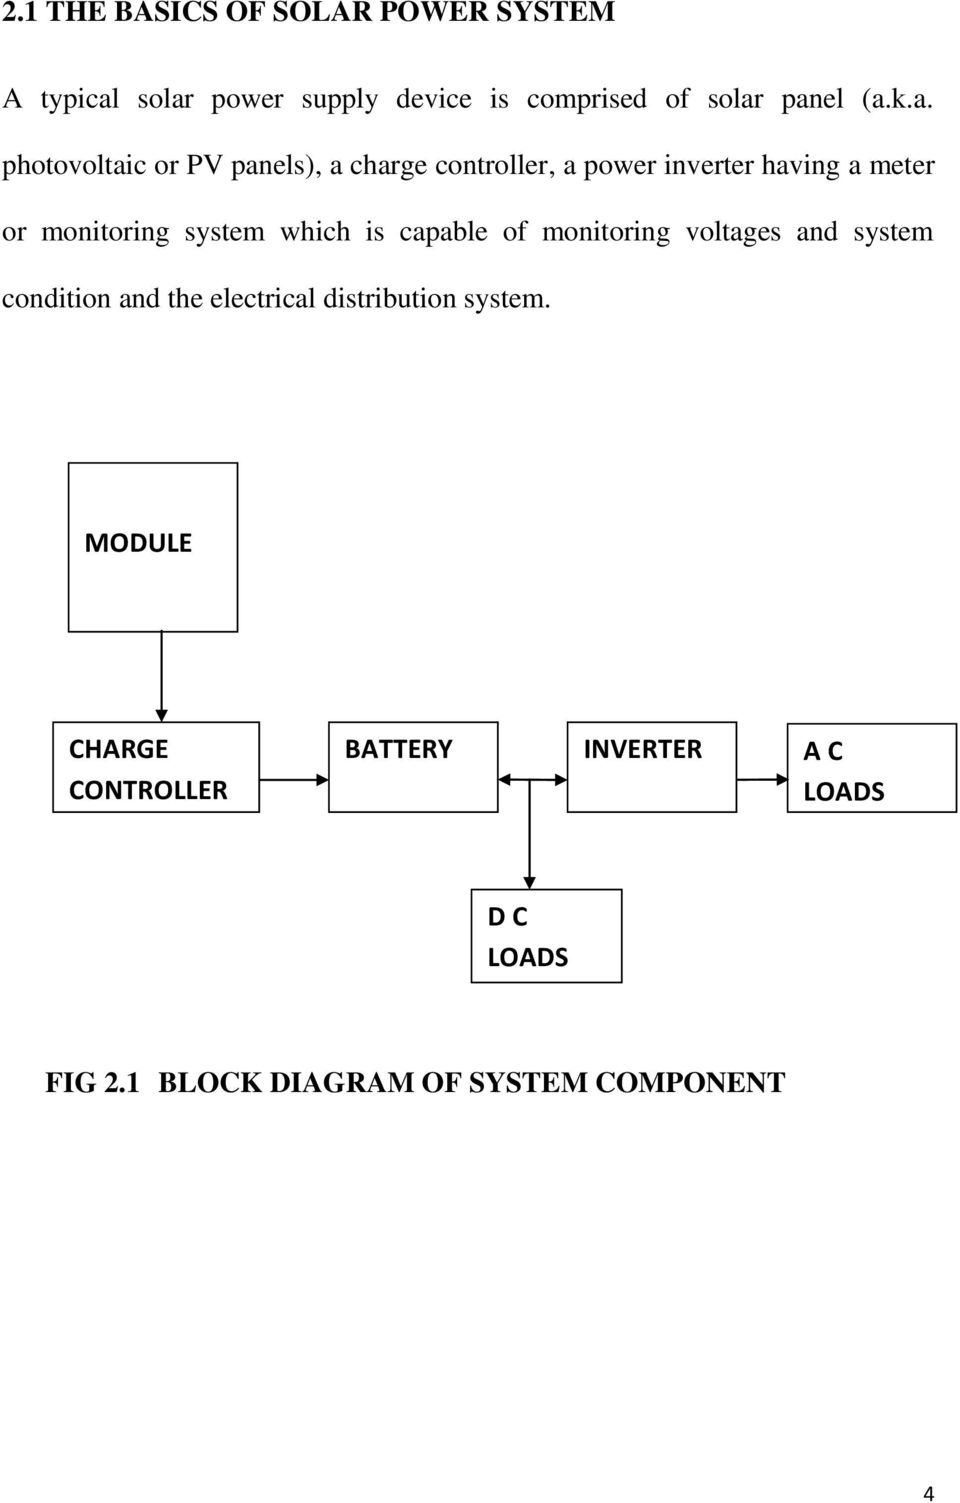 Design And Installation Of 200 Watt Solar Power System Pdf Electrical Block Diagram Which Is Capable Monitoring Voltages Condition The Distribution